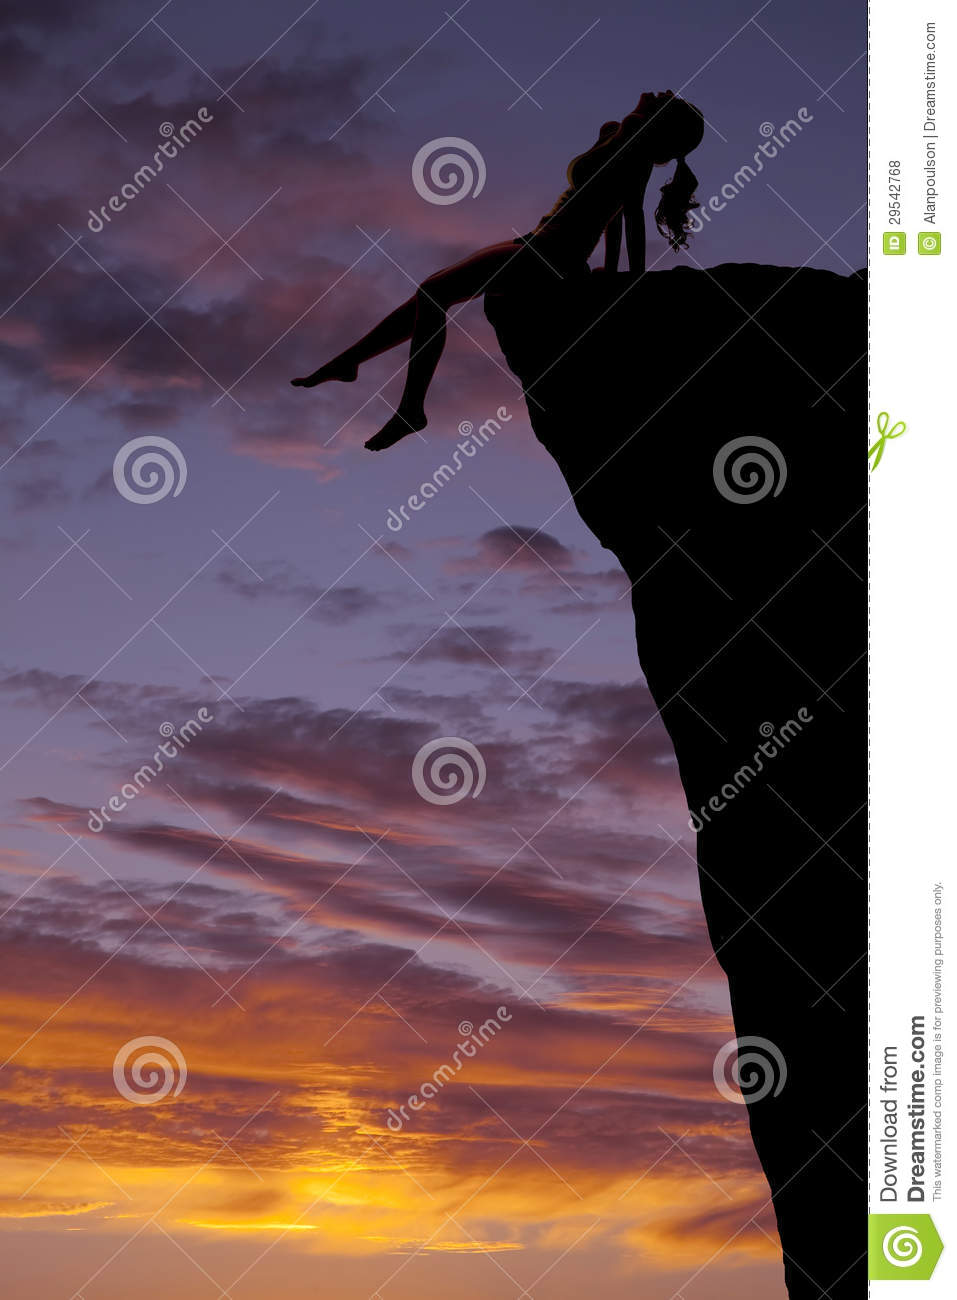 Woman On Cliff Silhouette Sunset Legs Royalty Free Stock ...